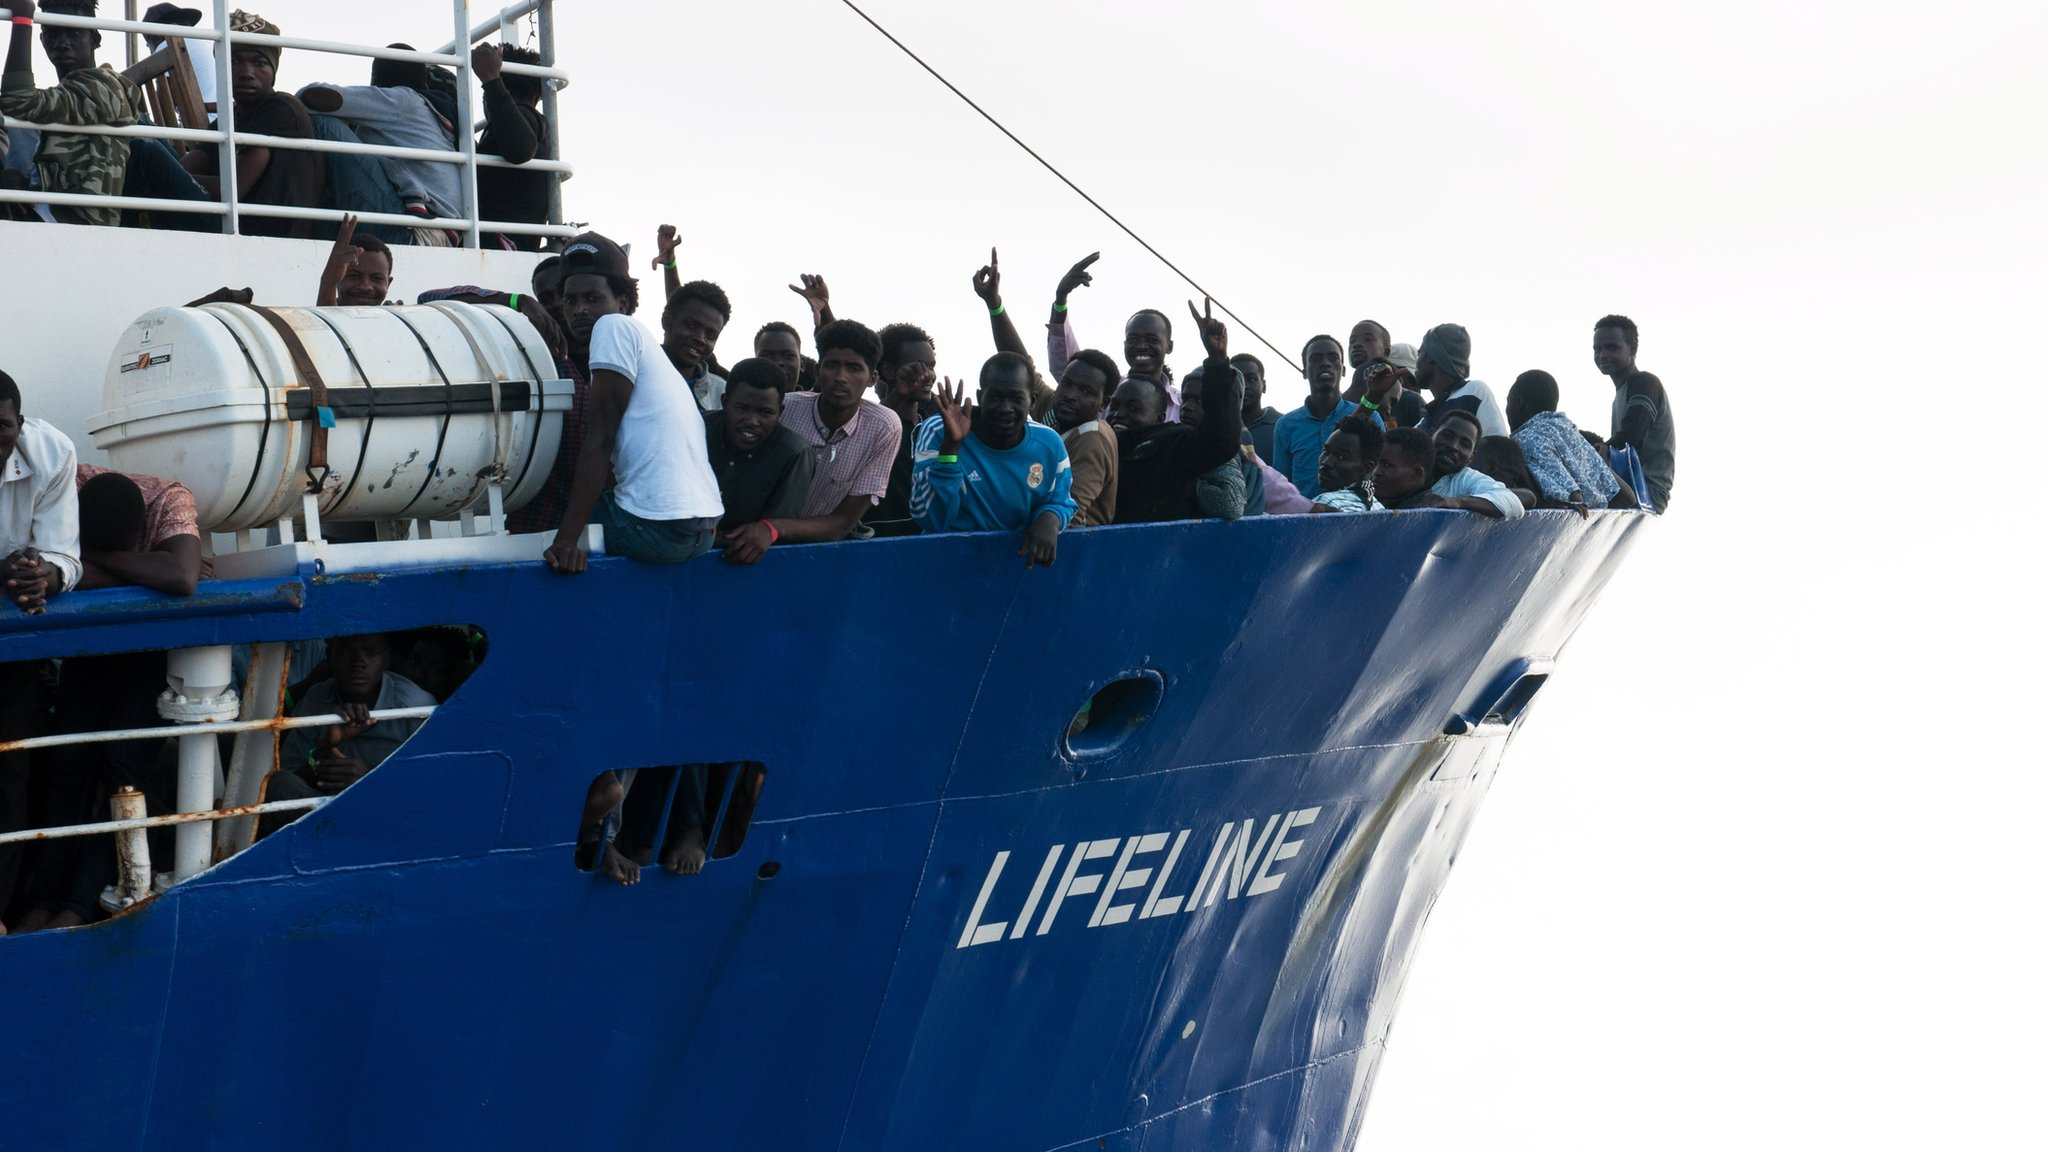 Italy to seize NGO rescue ships as migrant row deepens